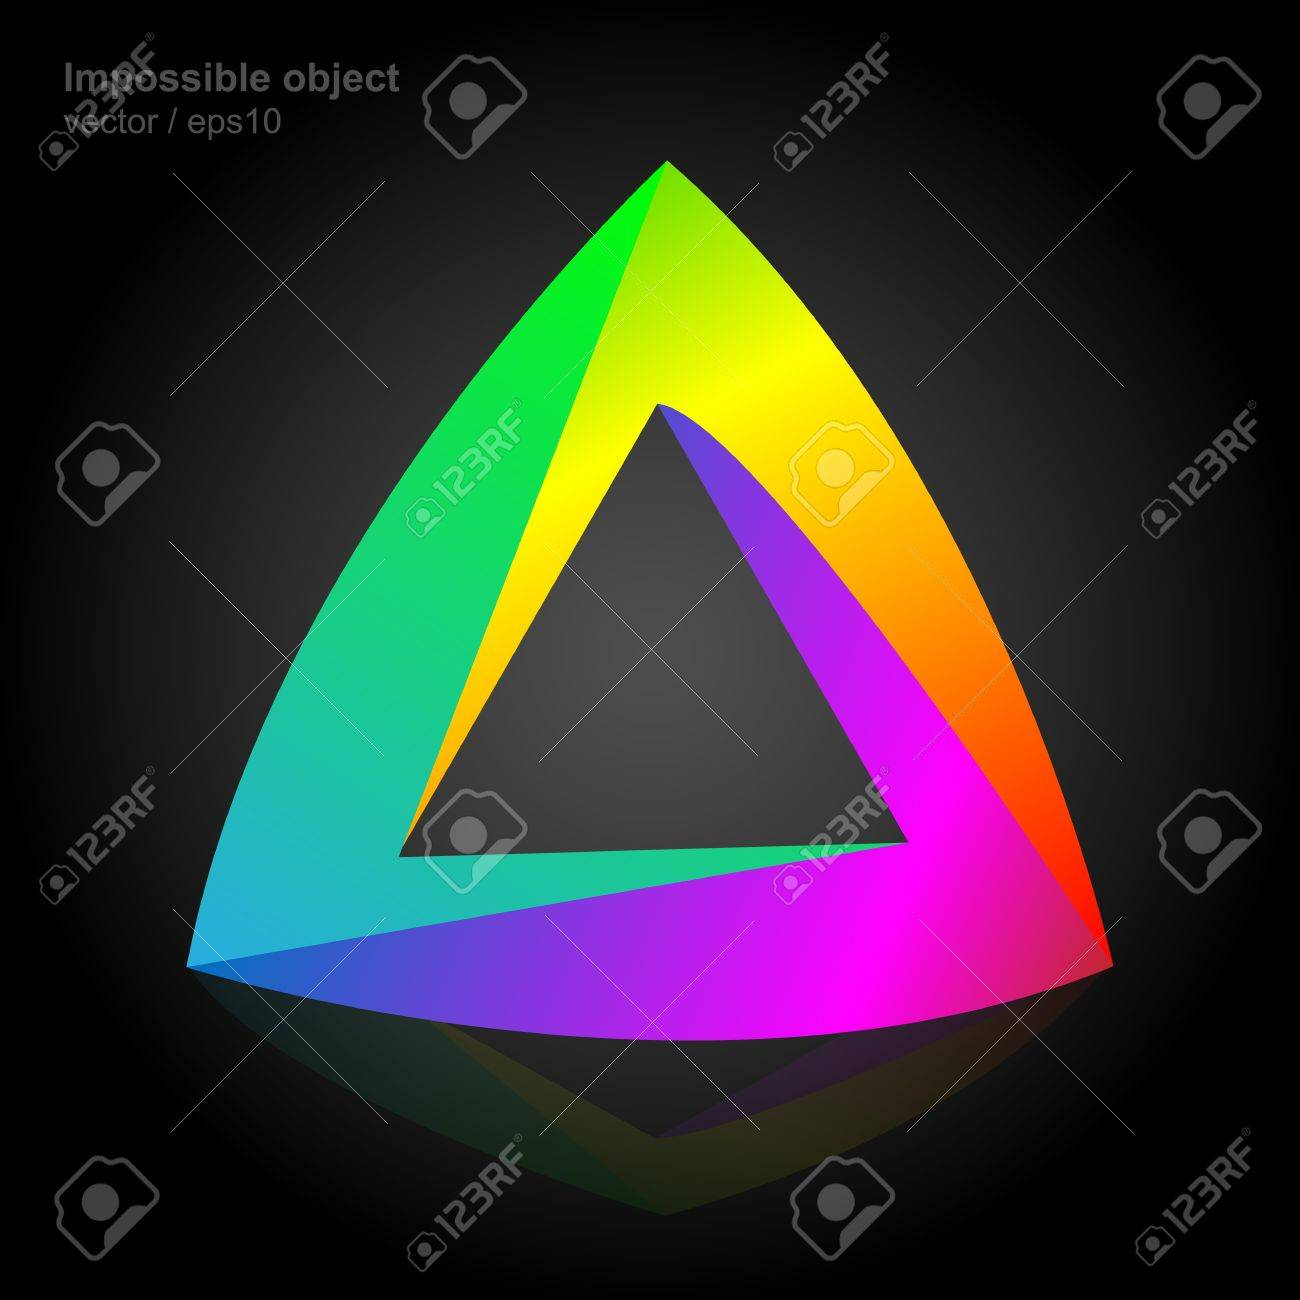 Abstract symbol, impossible object, triangle colorful Stock Vector - 18976377